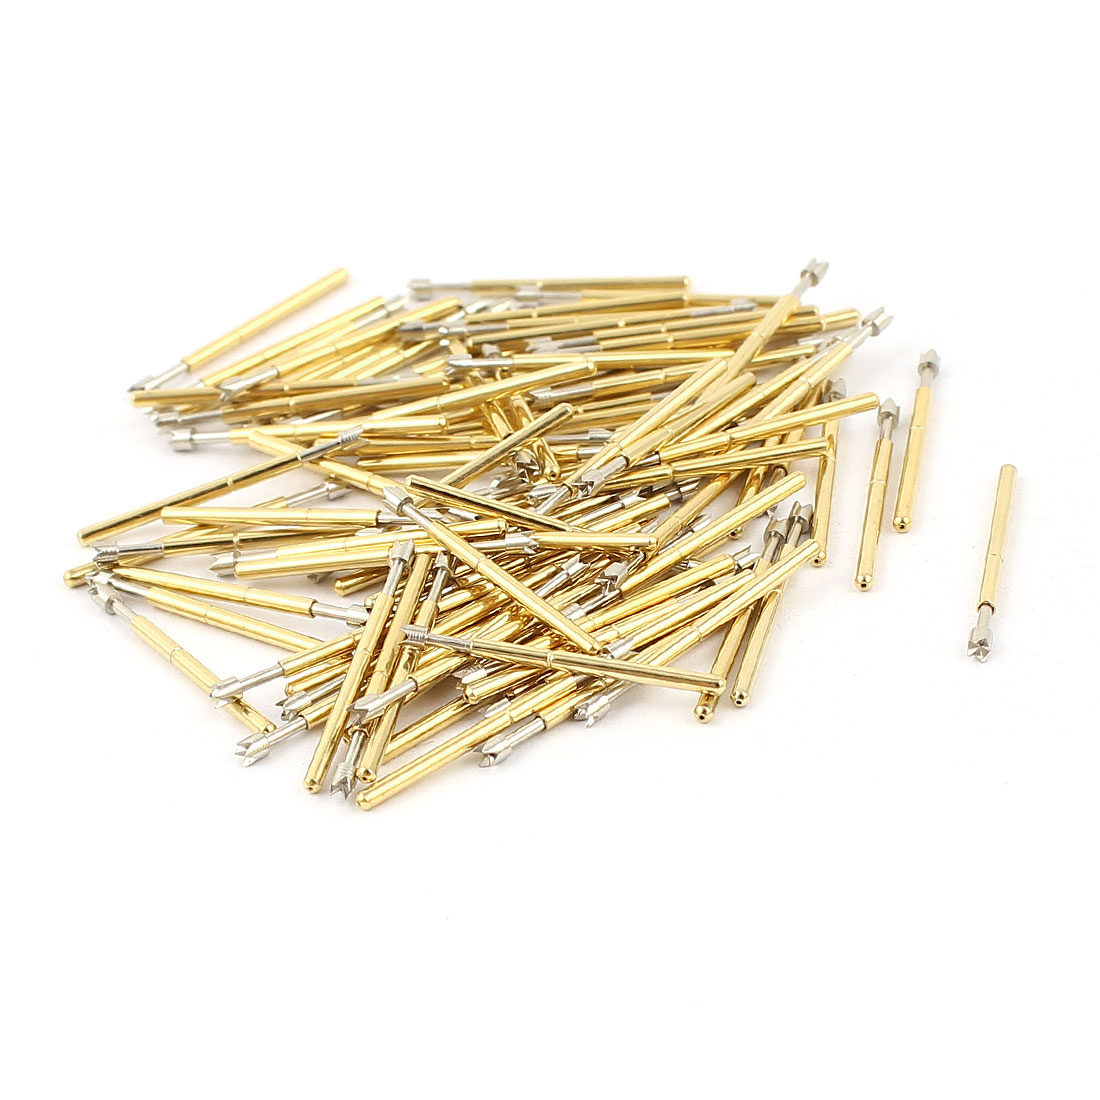 100 Pcs P75-Q2 1.3mm 4-Point Crown Tip Spring Testing Probes Pin